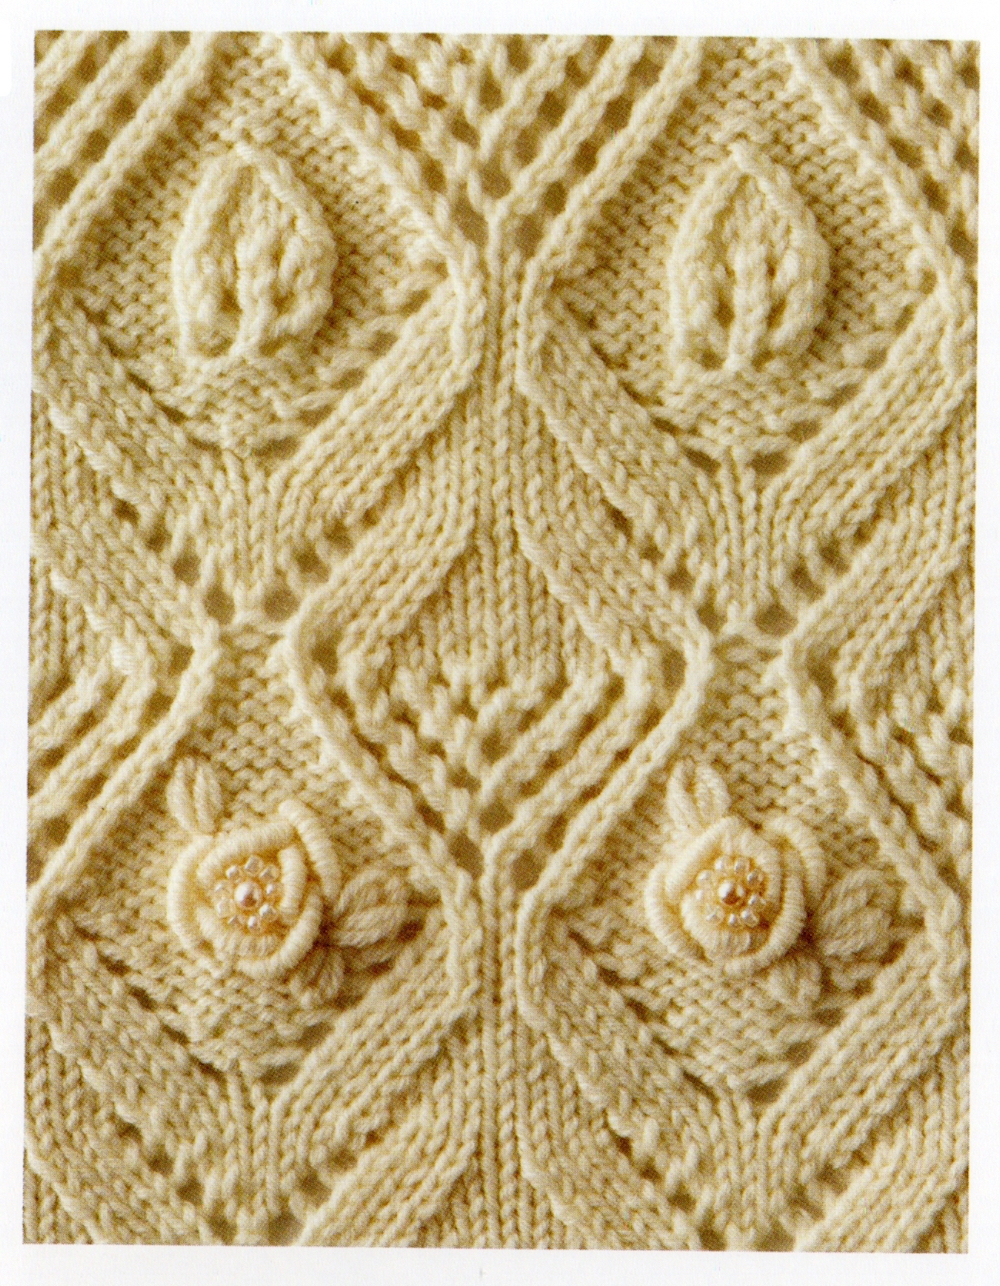 Knot Knecessarily Known Knitting: If It Is Japanese, Can It Be ...